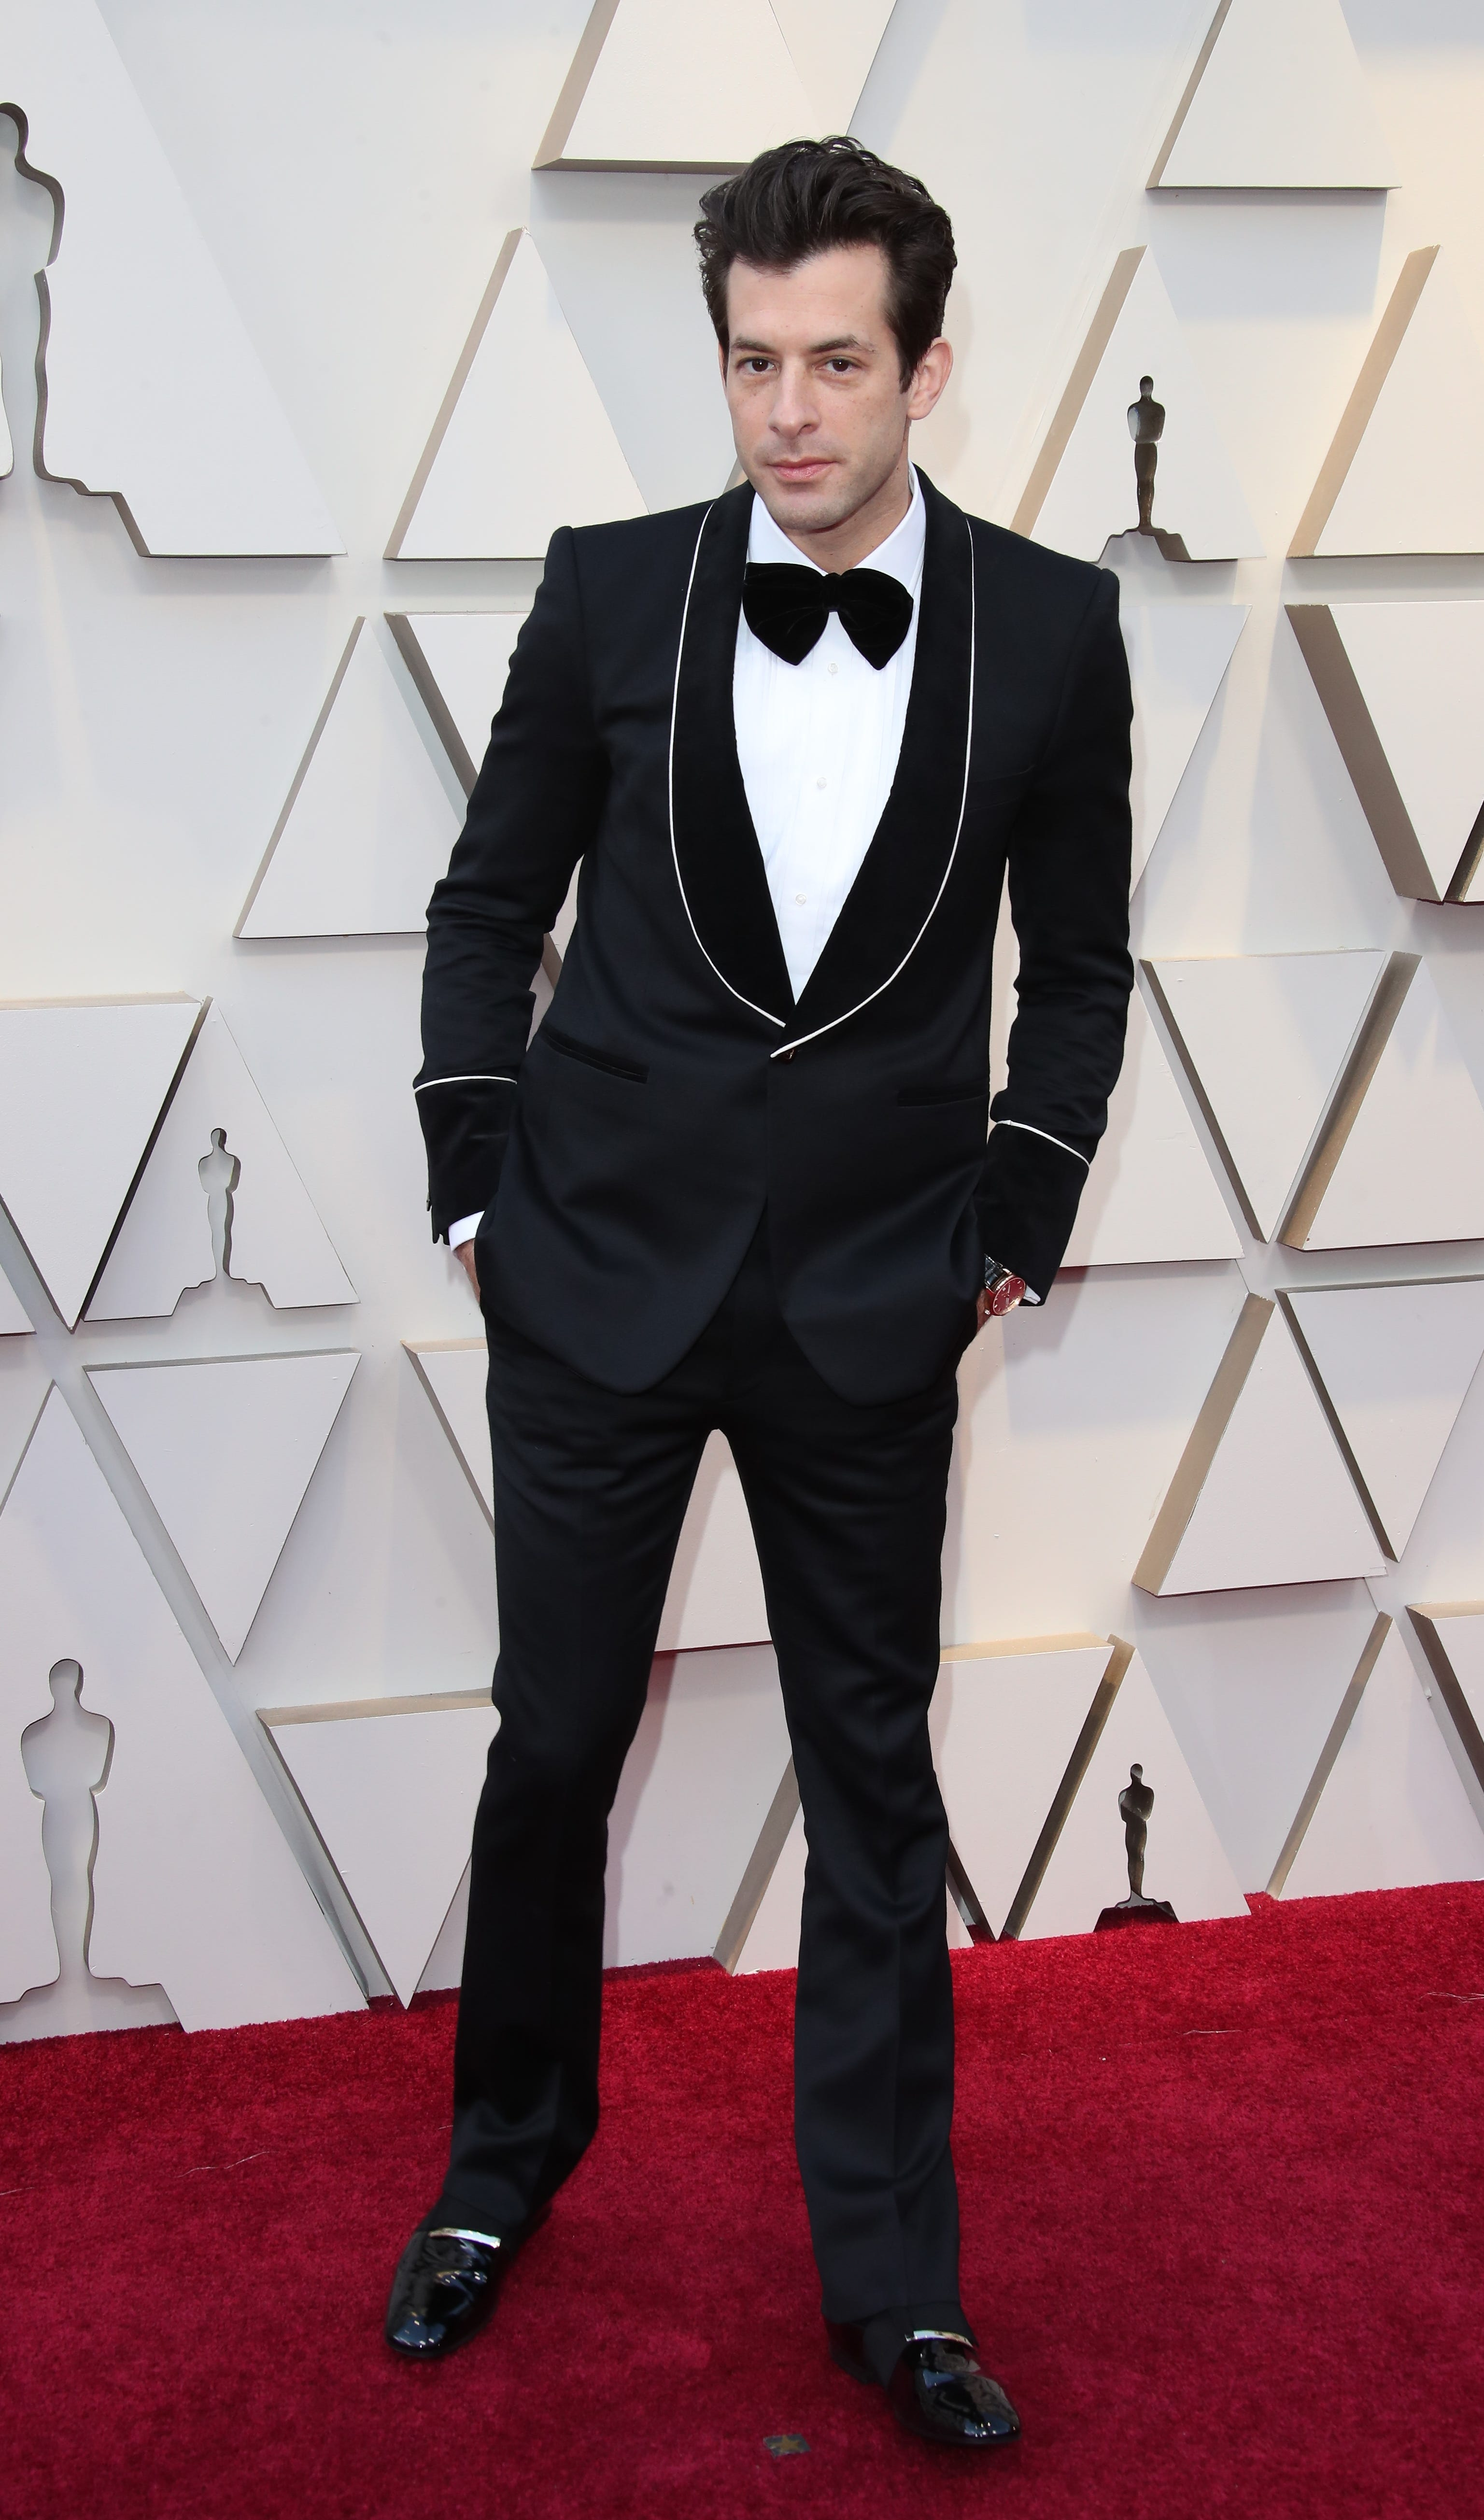 February 24, 2019; Los Angeles, CA, USA; Mark Ronson arrives at the 91st Academy Awards at the Dolby Theatre. Mandatory Credit: Dan MacMedan-USA TODAY NETWORK (Via OlyDrop)